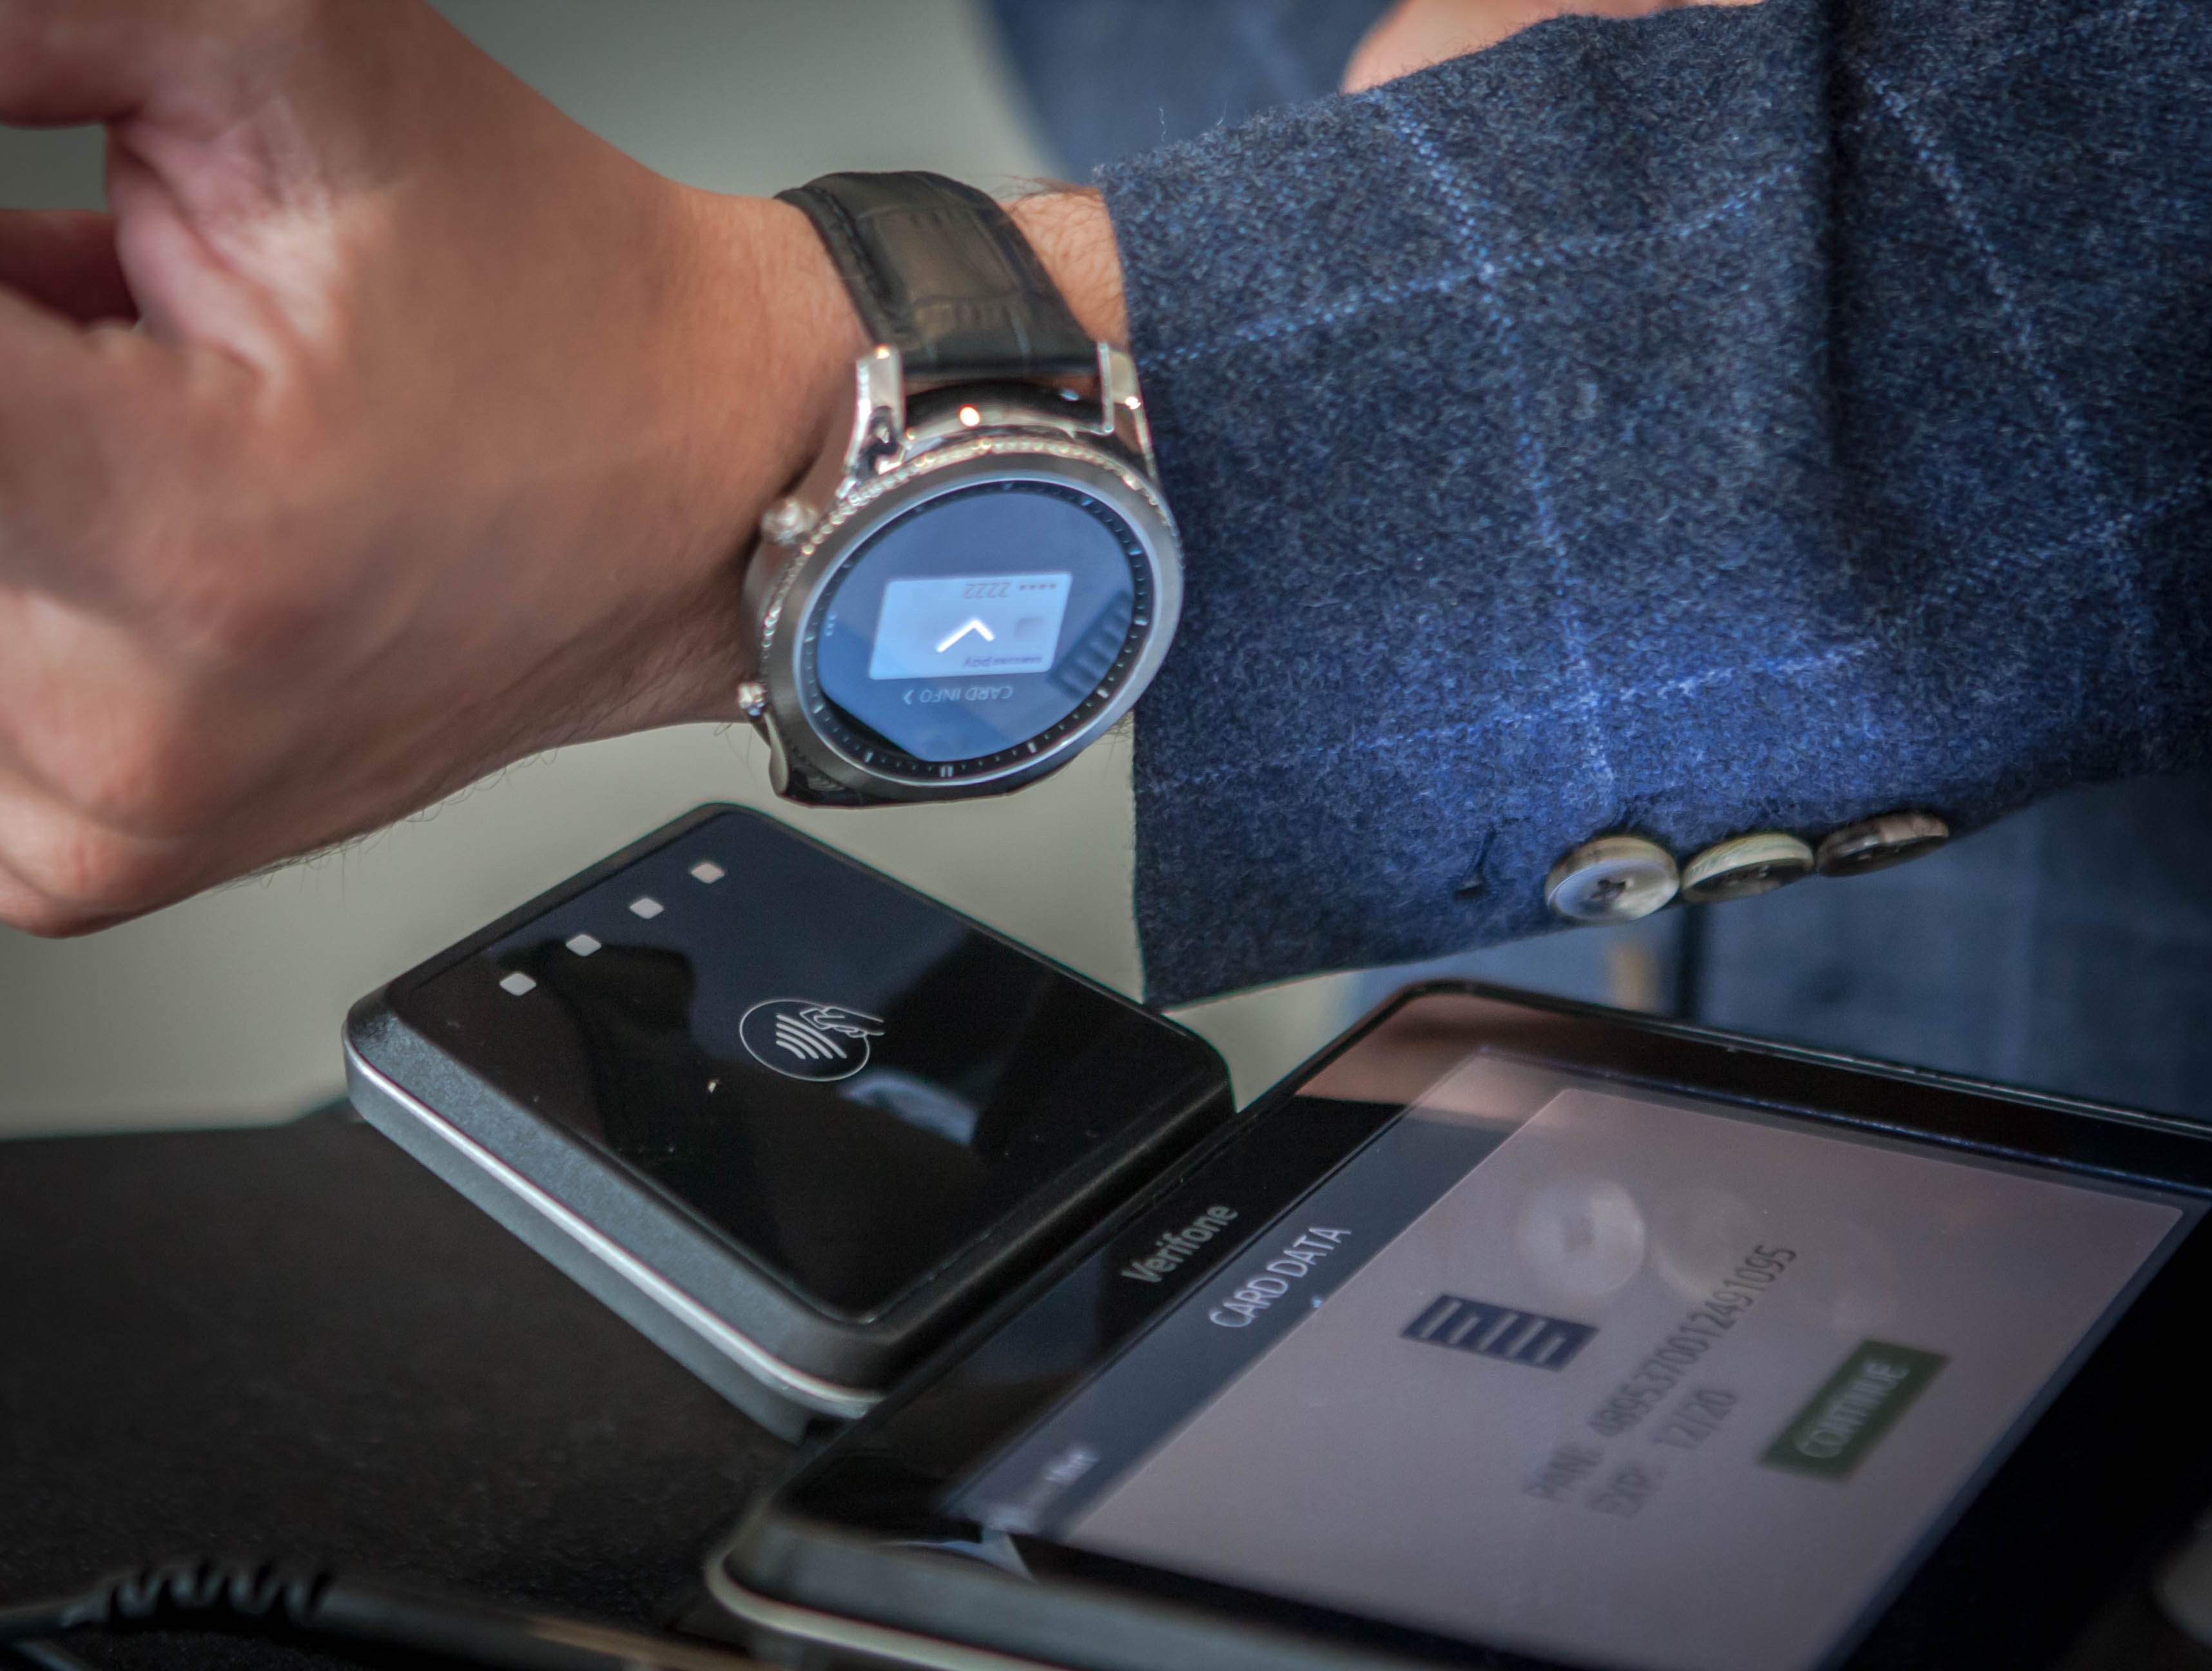 Using Samsung Pay with the Gear S3 smartwatch